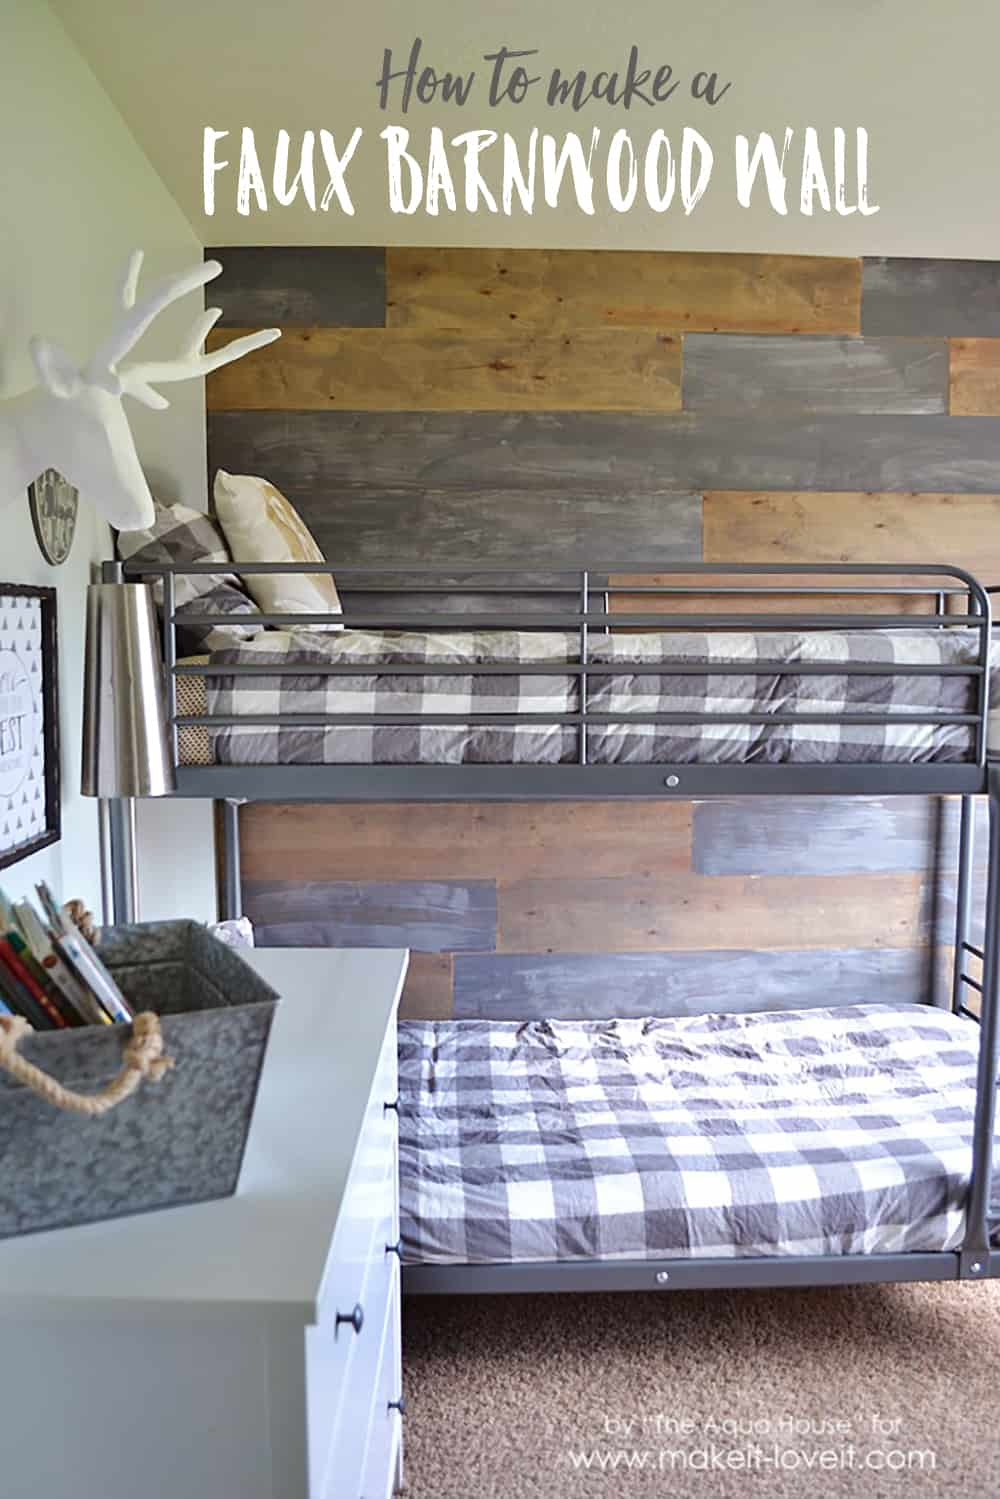 Diy faux barnwood wall